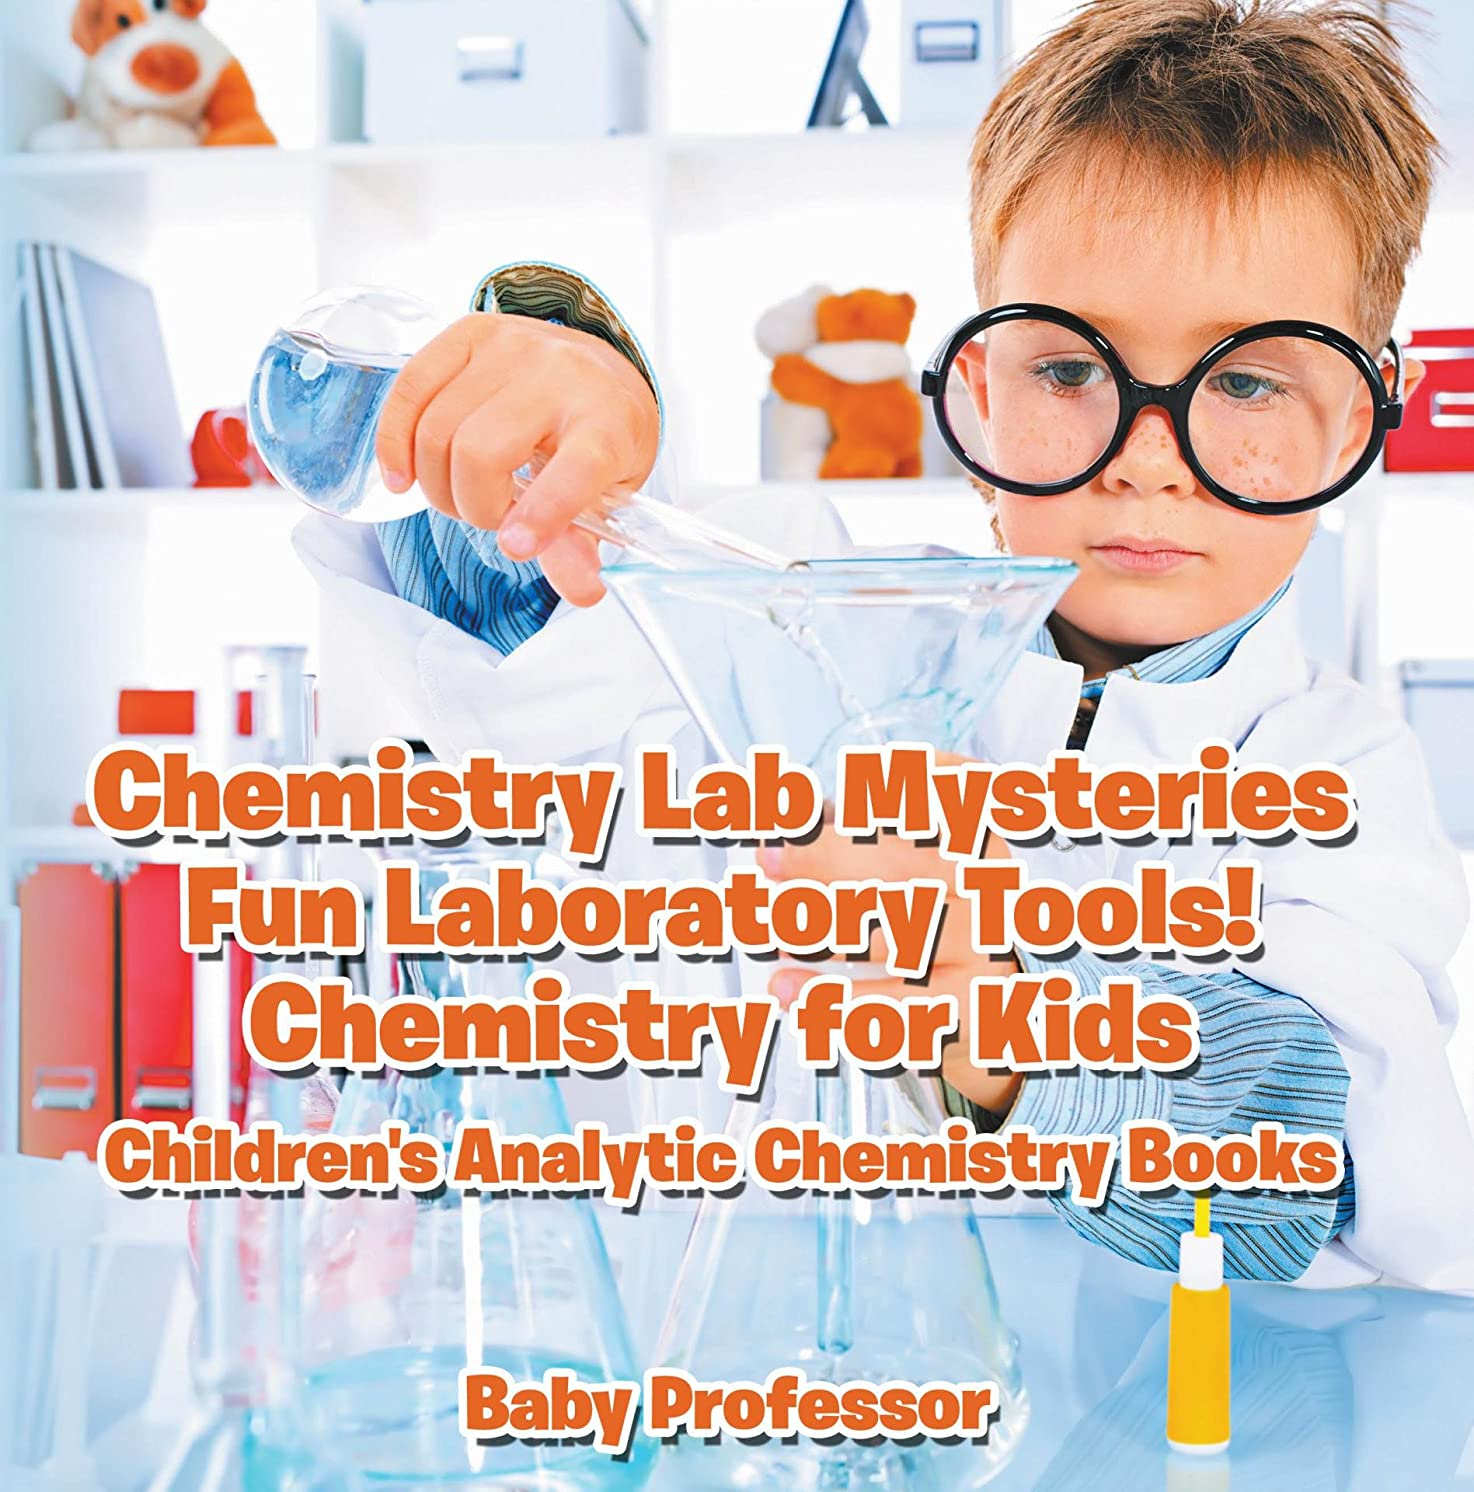 症候群予想外横向きChemistry Lab Mysteries, Fun Laboratory Tools! Chemistry for Kids - Children's Analytic Chemistry Books (English Edition)